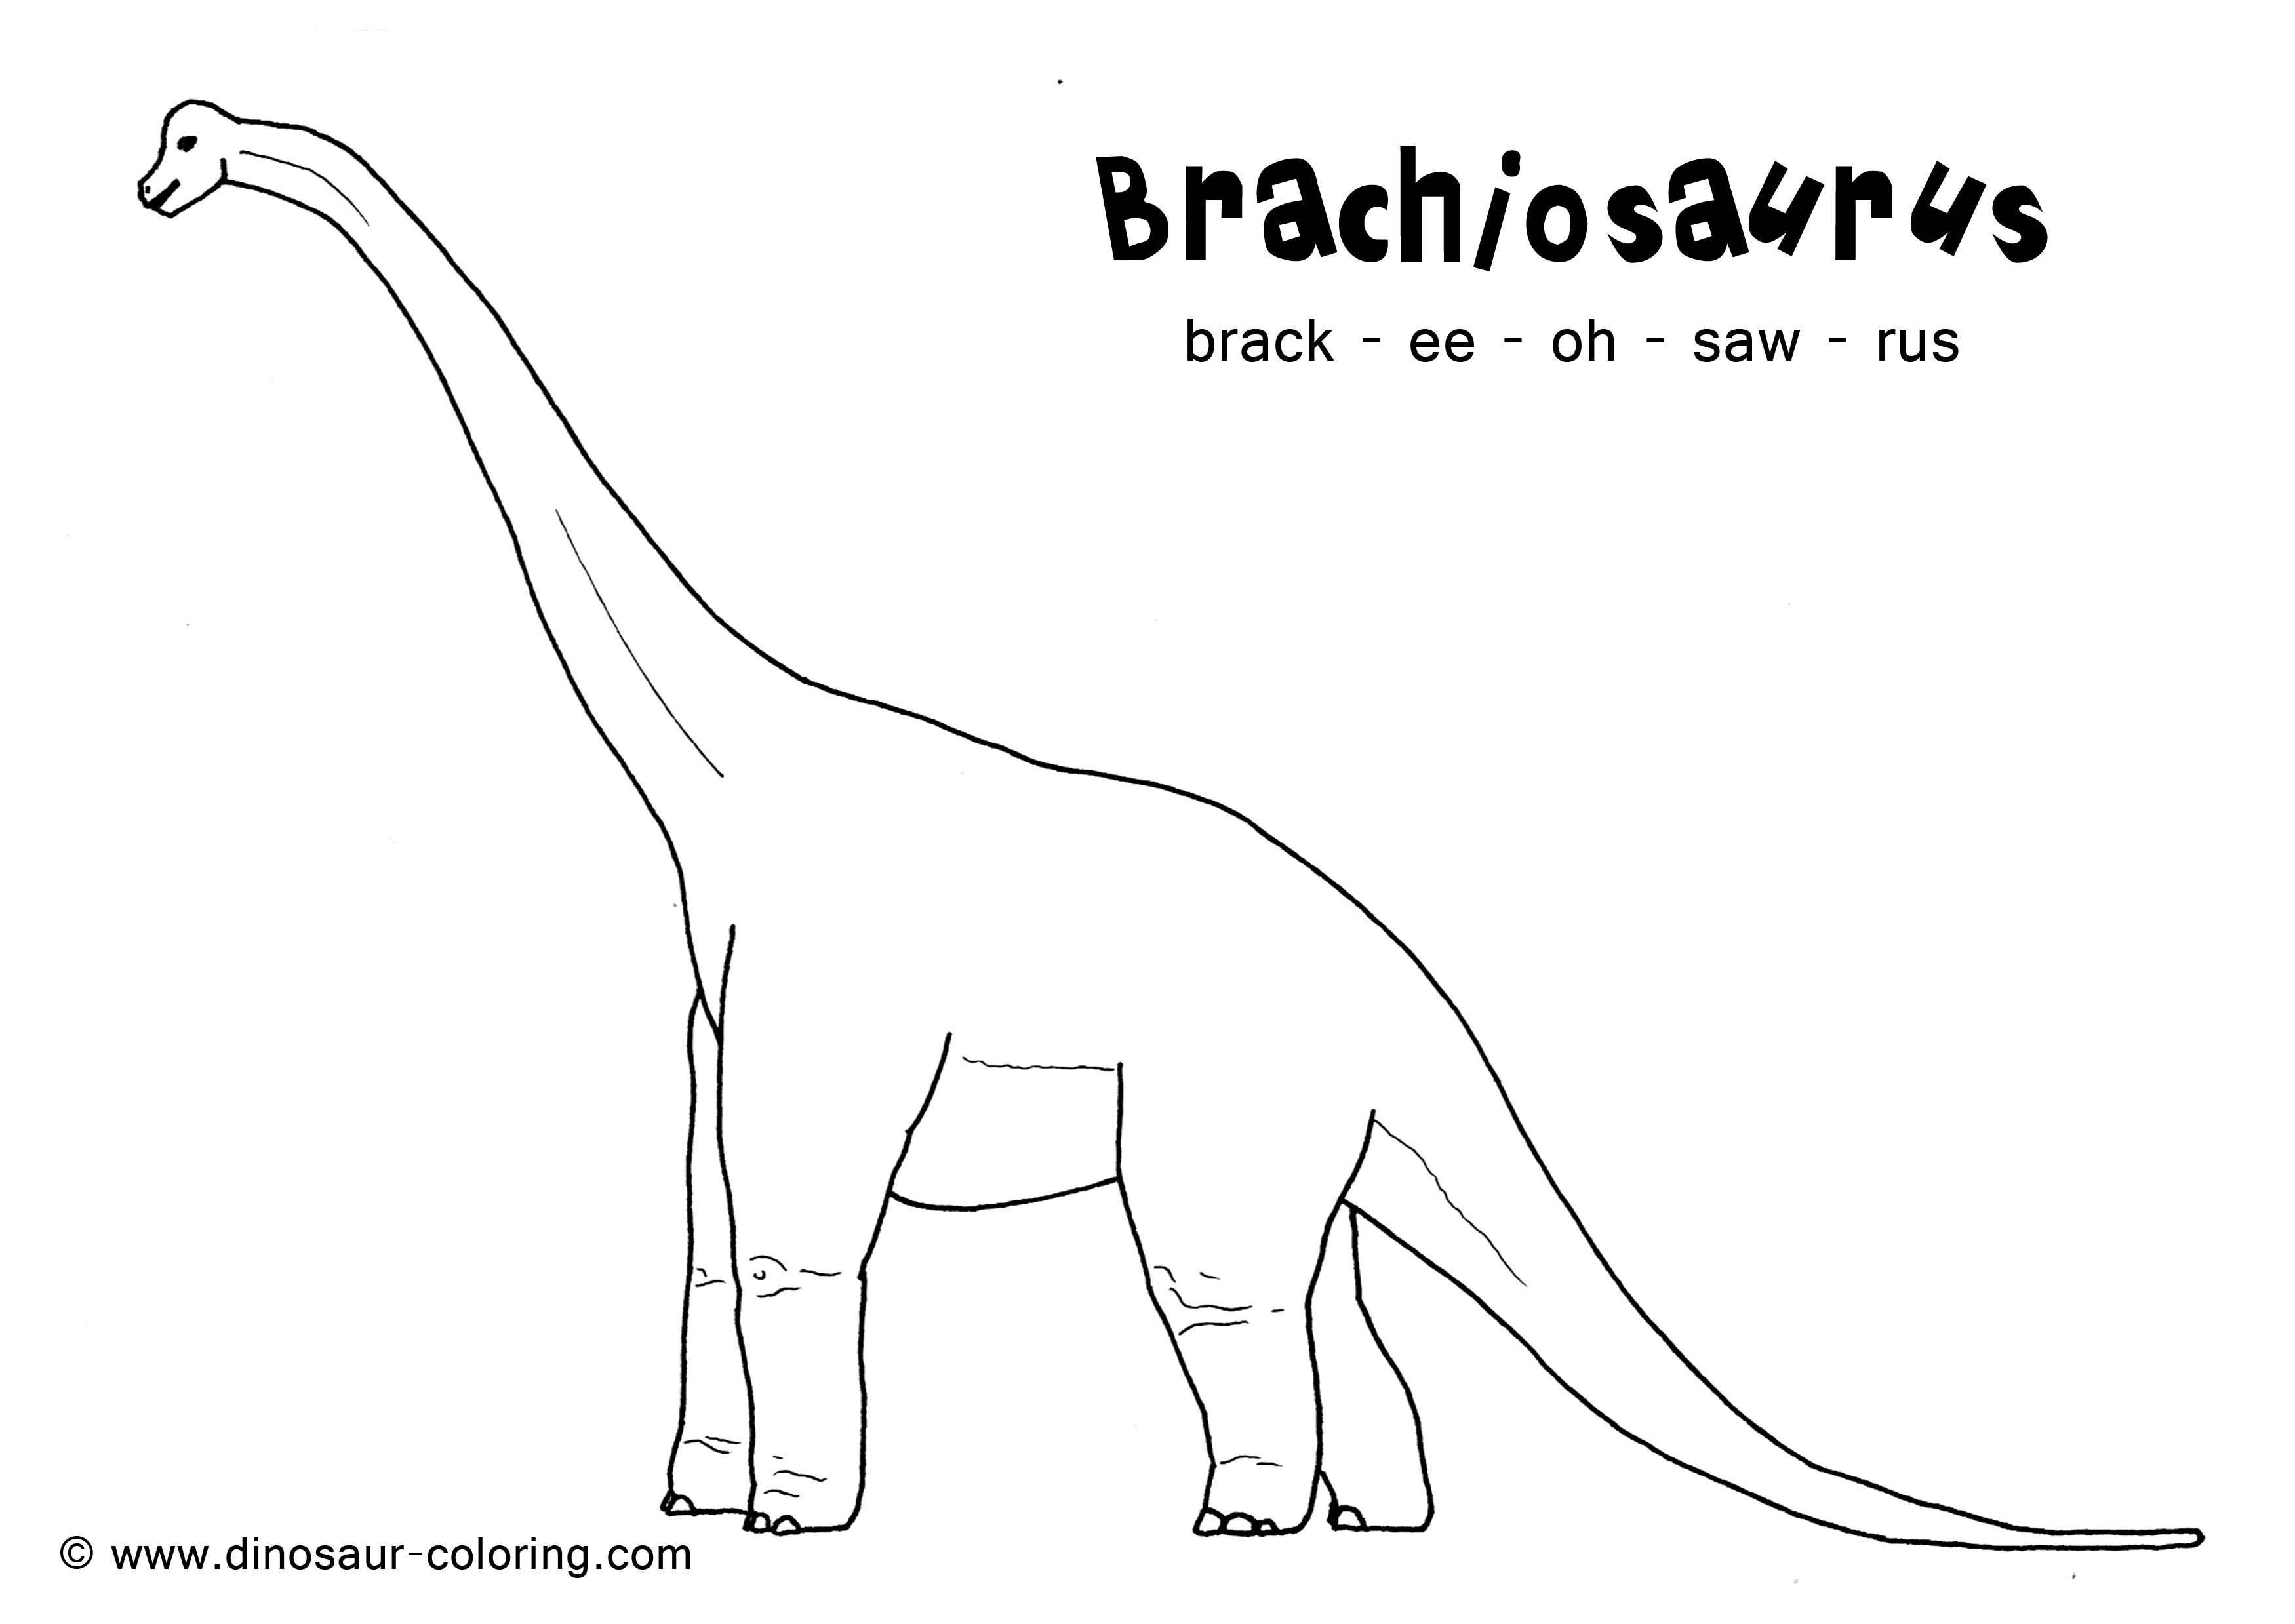 Dinosaur colouring pictures - 17 Best Images About Daverende Dino S Kleurplaten On